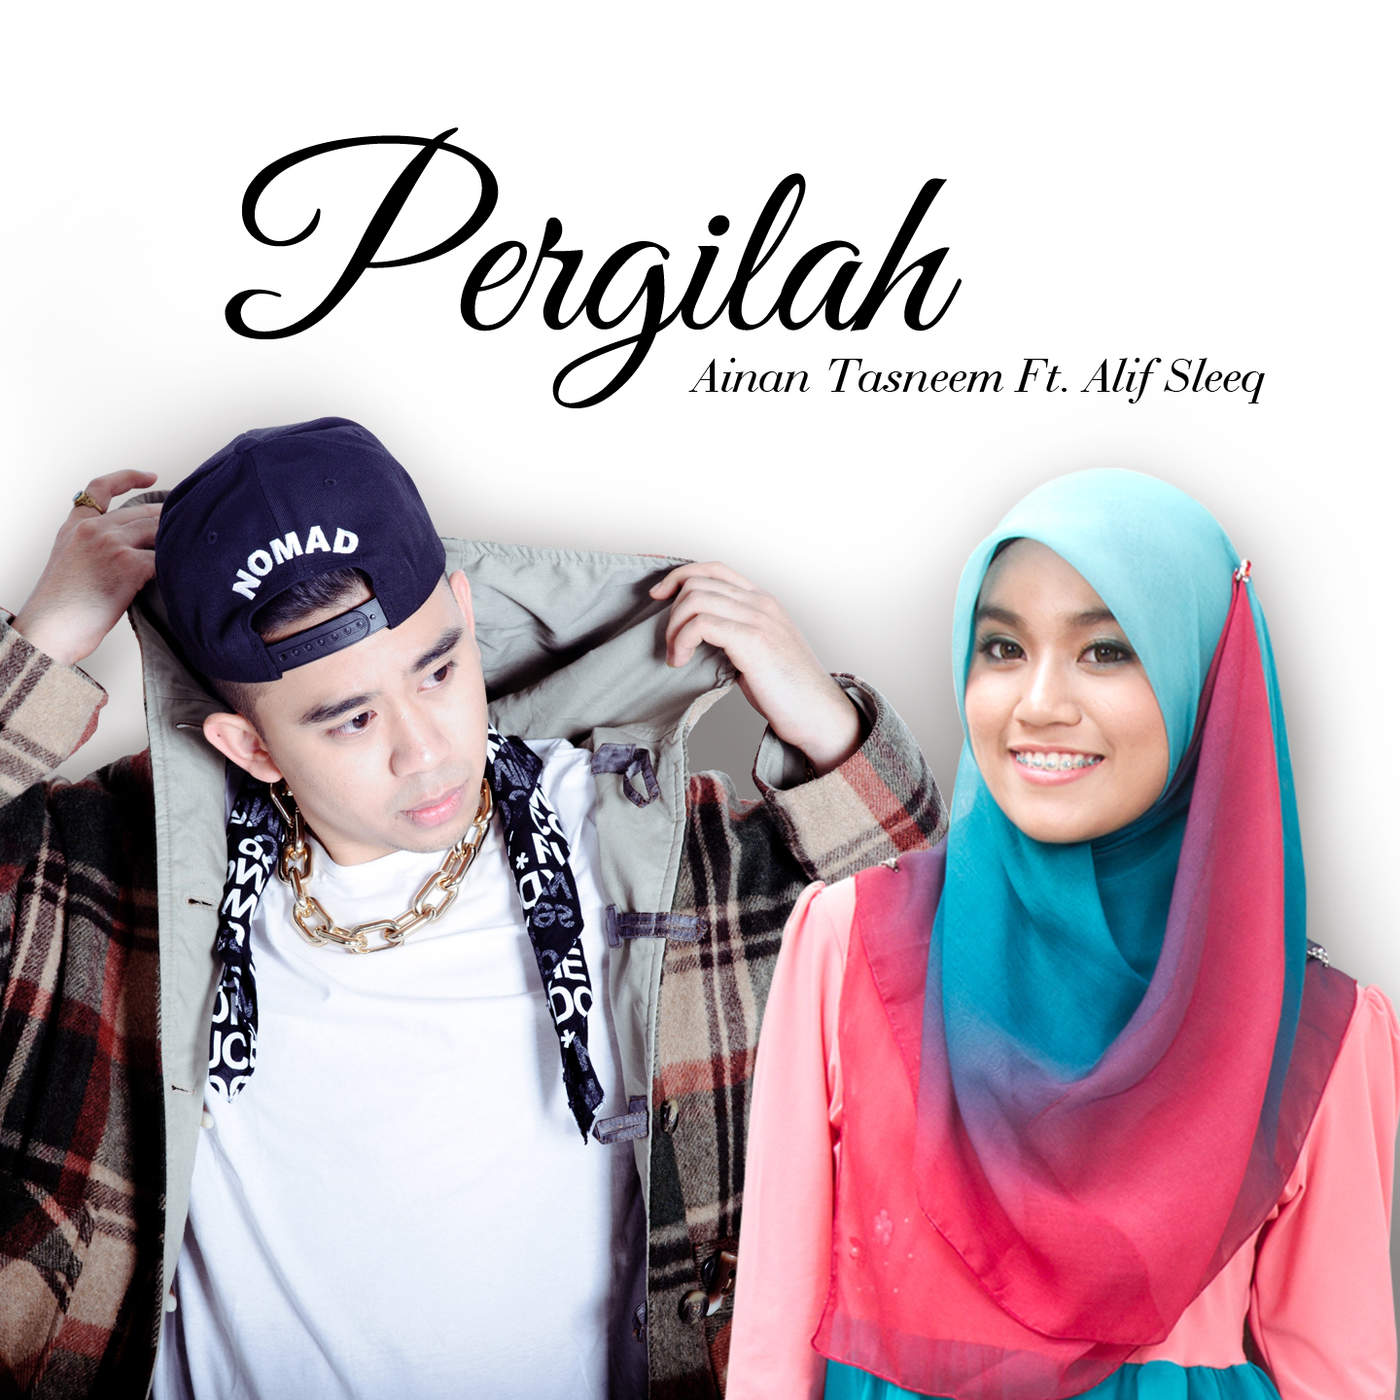 Ainan Tasneem - Pergilah (feat. Alif Sleeq) on iTunes